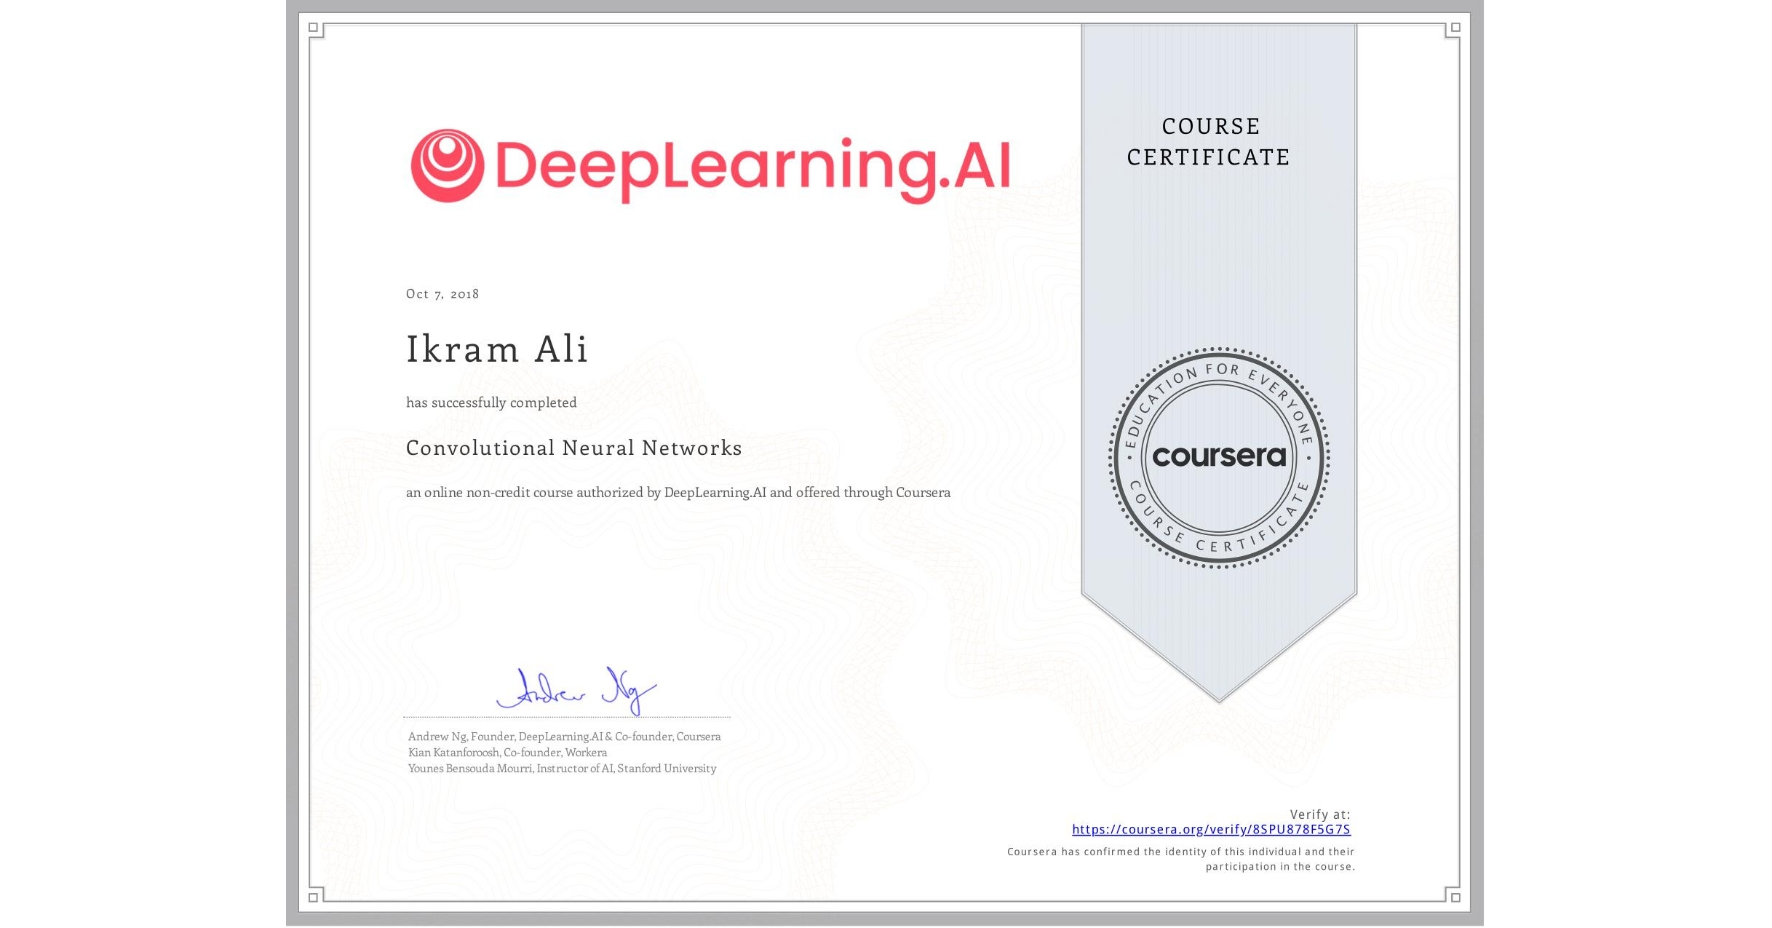 View certificate for Ikram Ali, Convolutional Neural Networks, an online non-credit course authorized by DeepLearning.AI and offered through Coursera